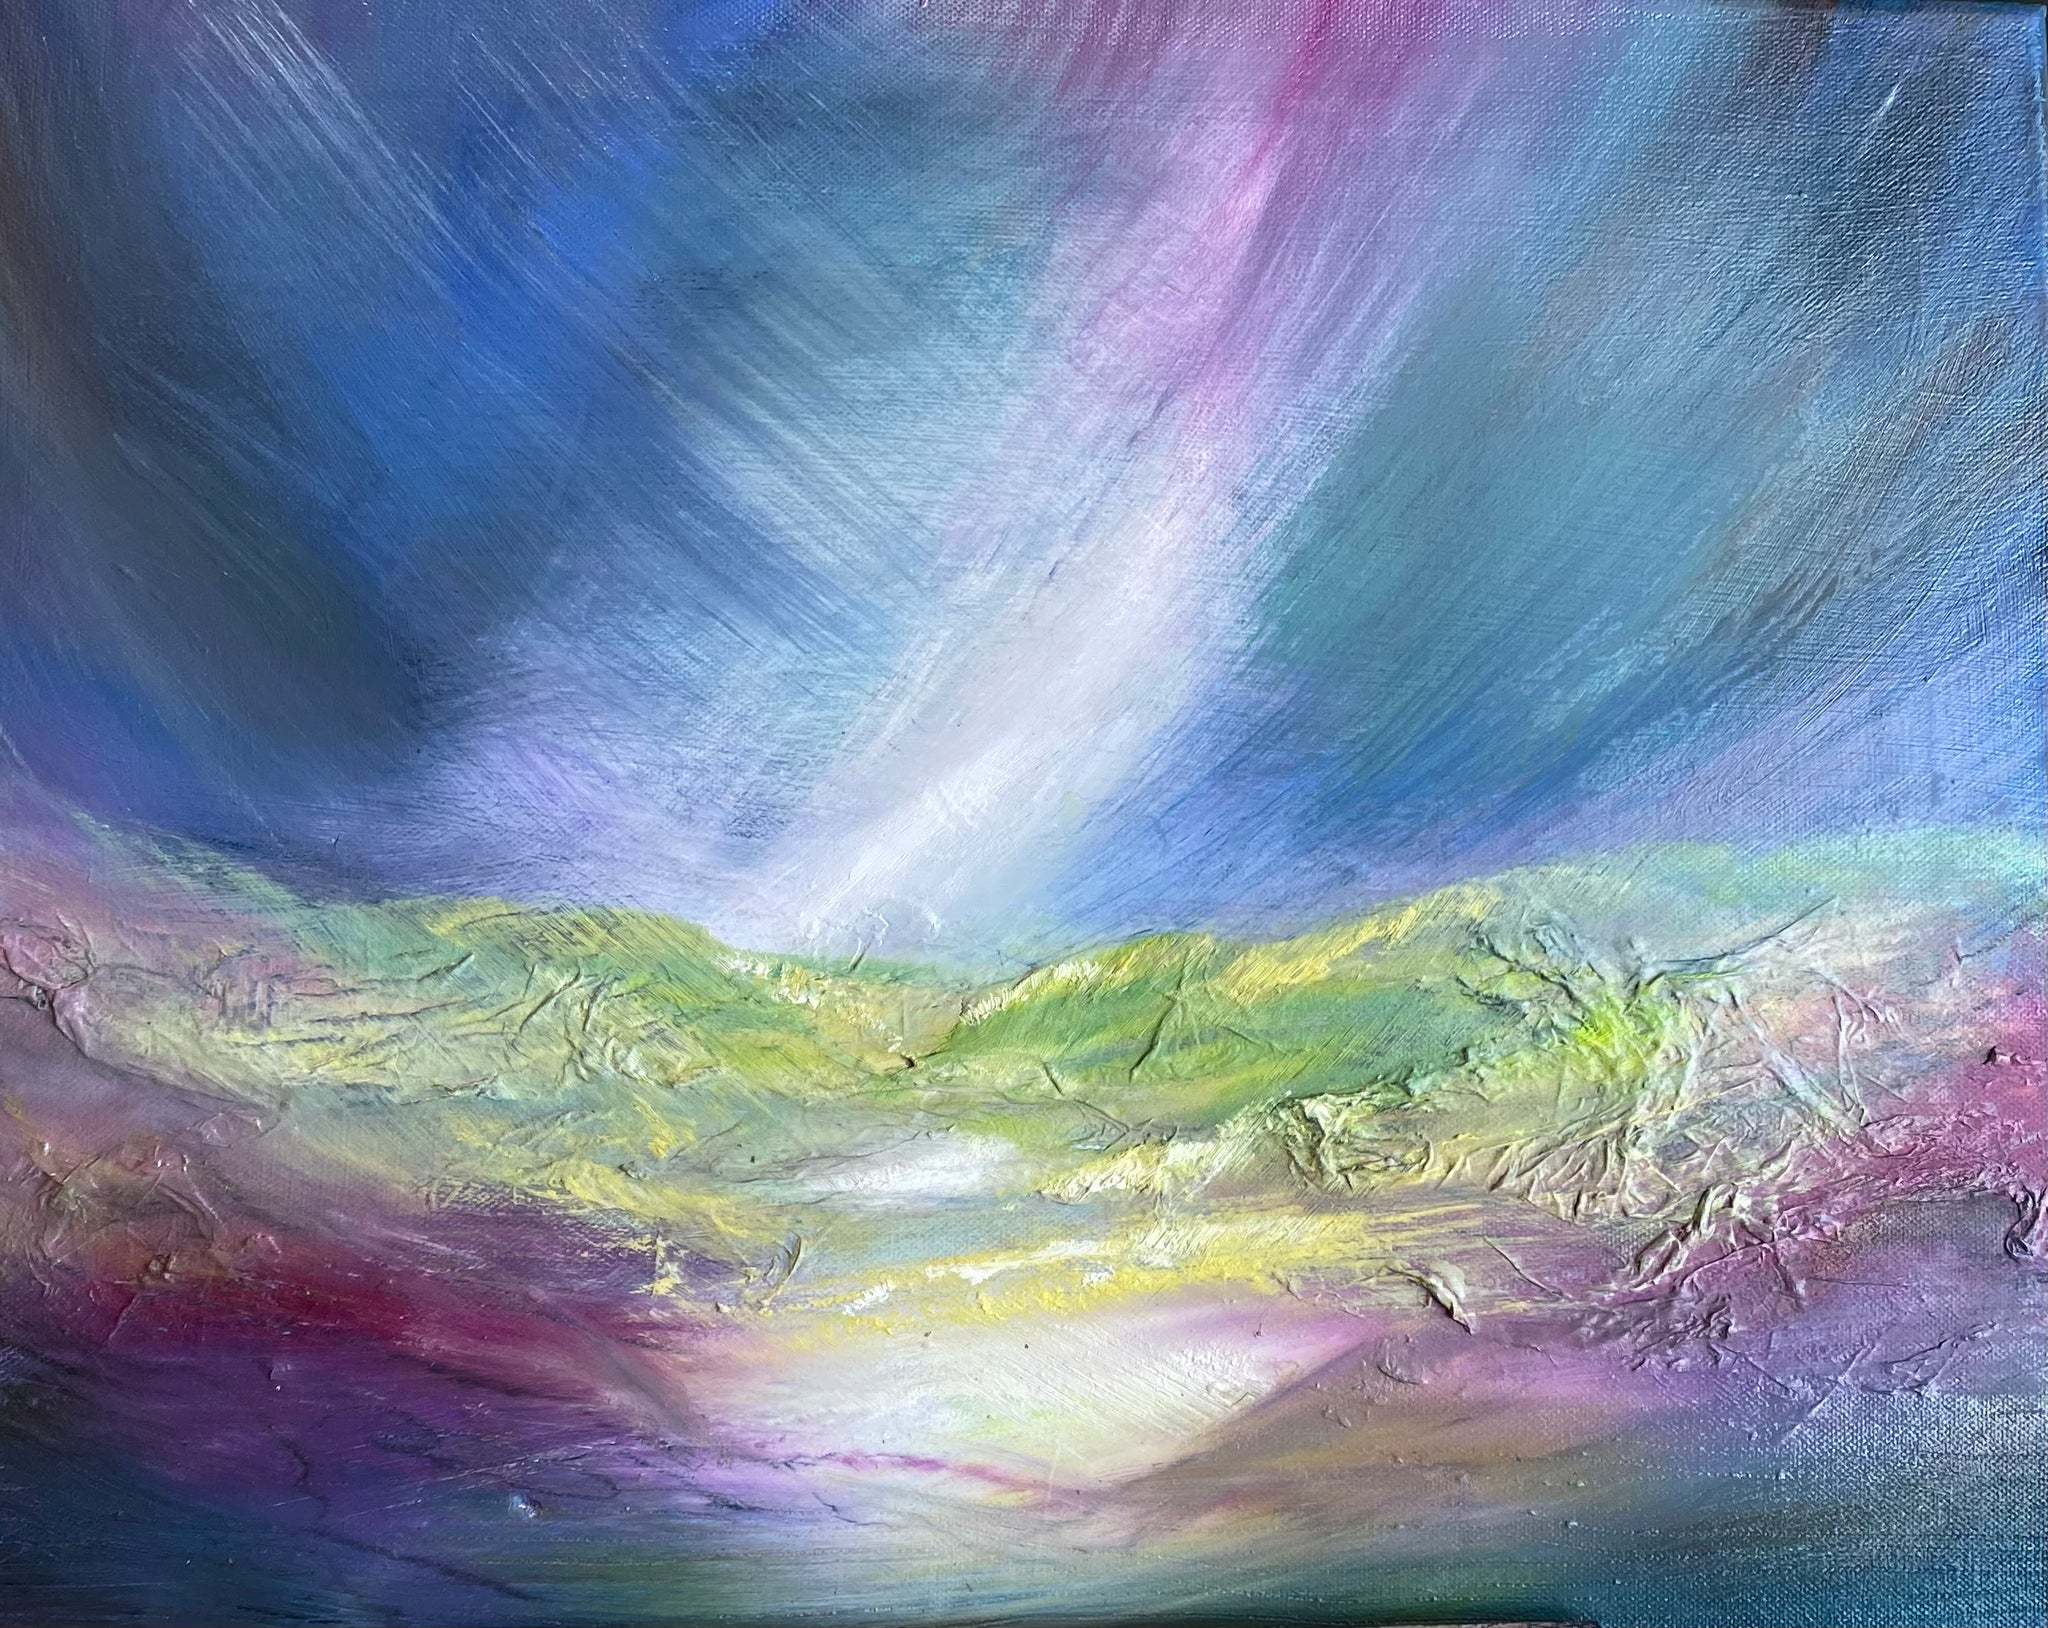 Cragg Vale oil on canvas original artwork by Helen Trevisiol Duff